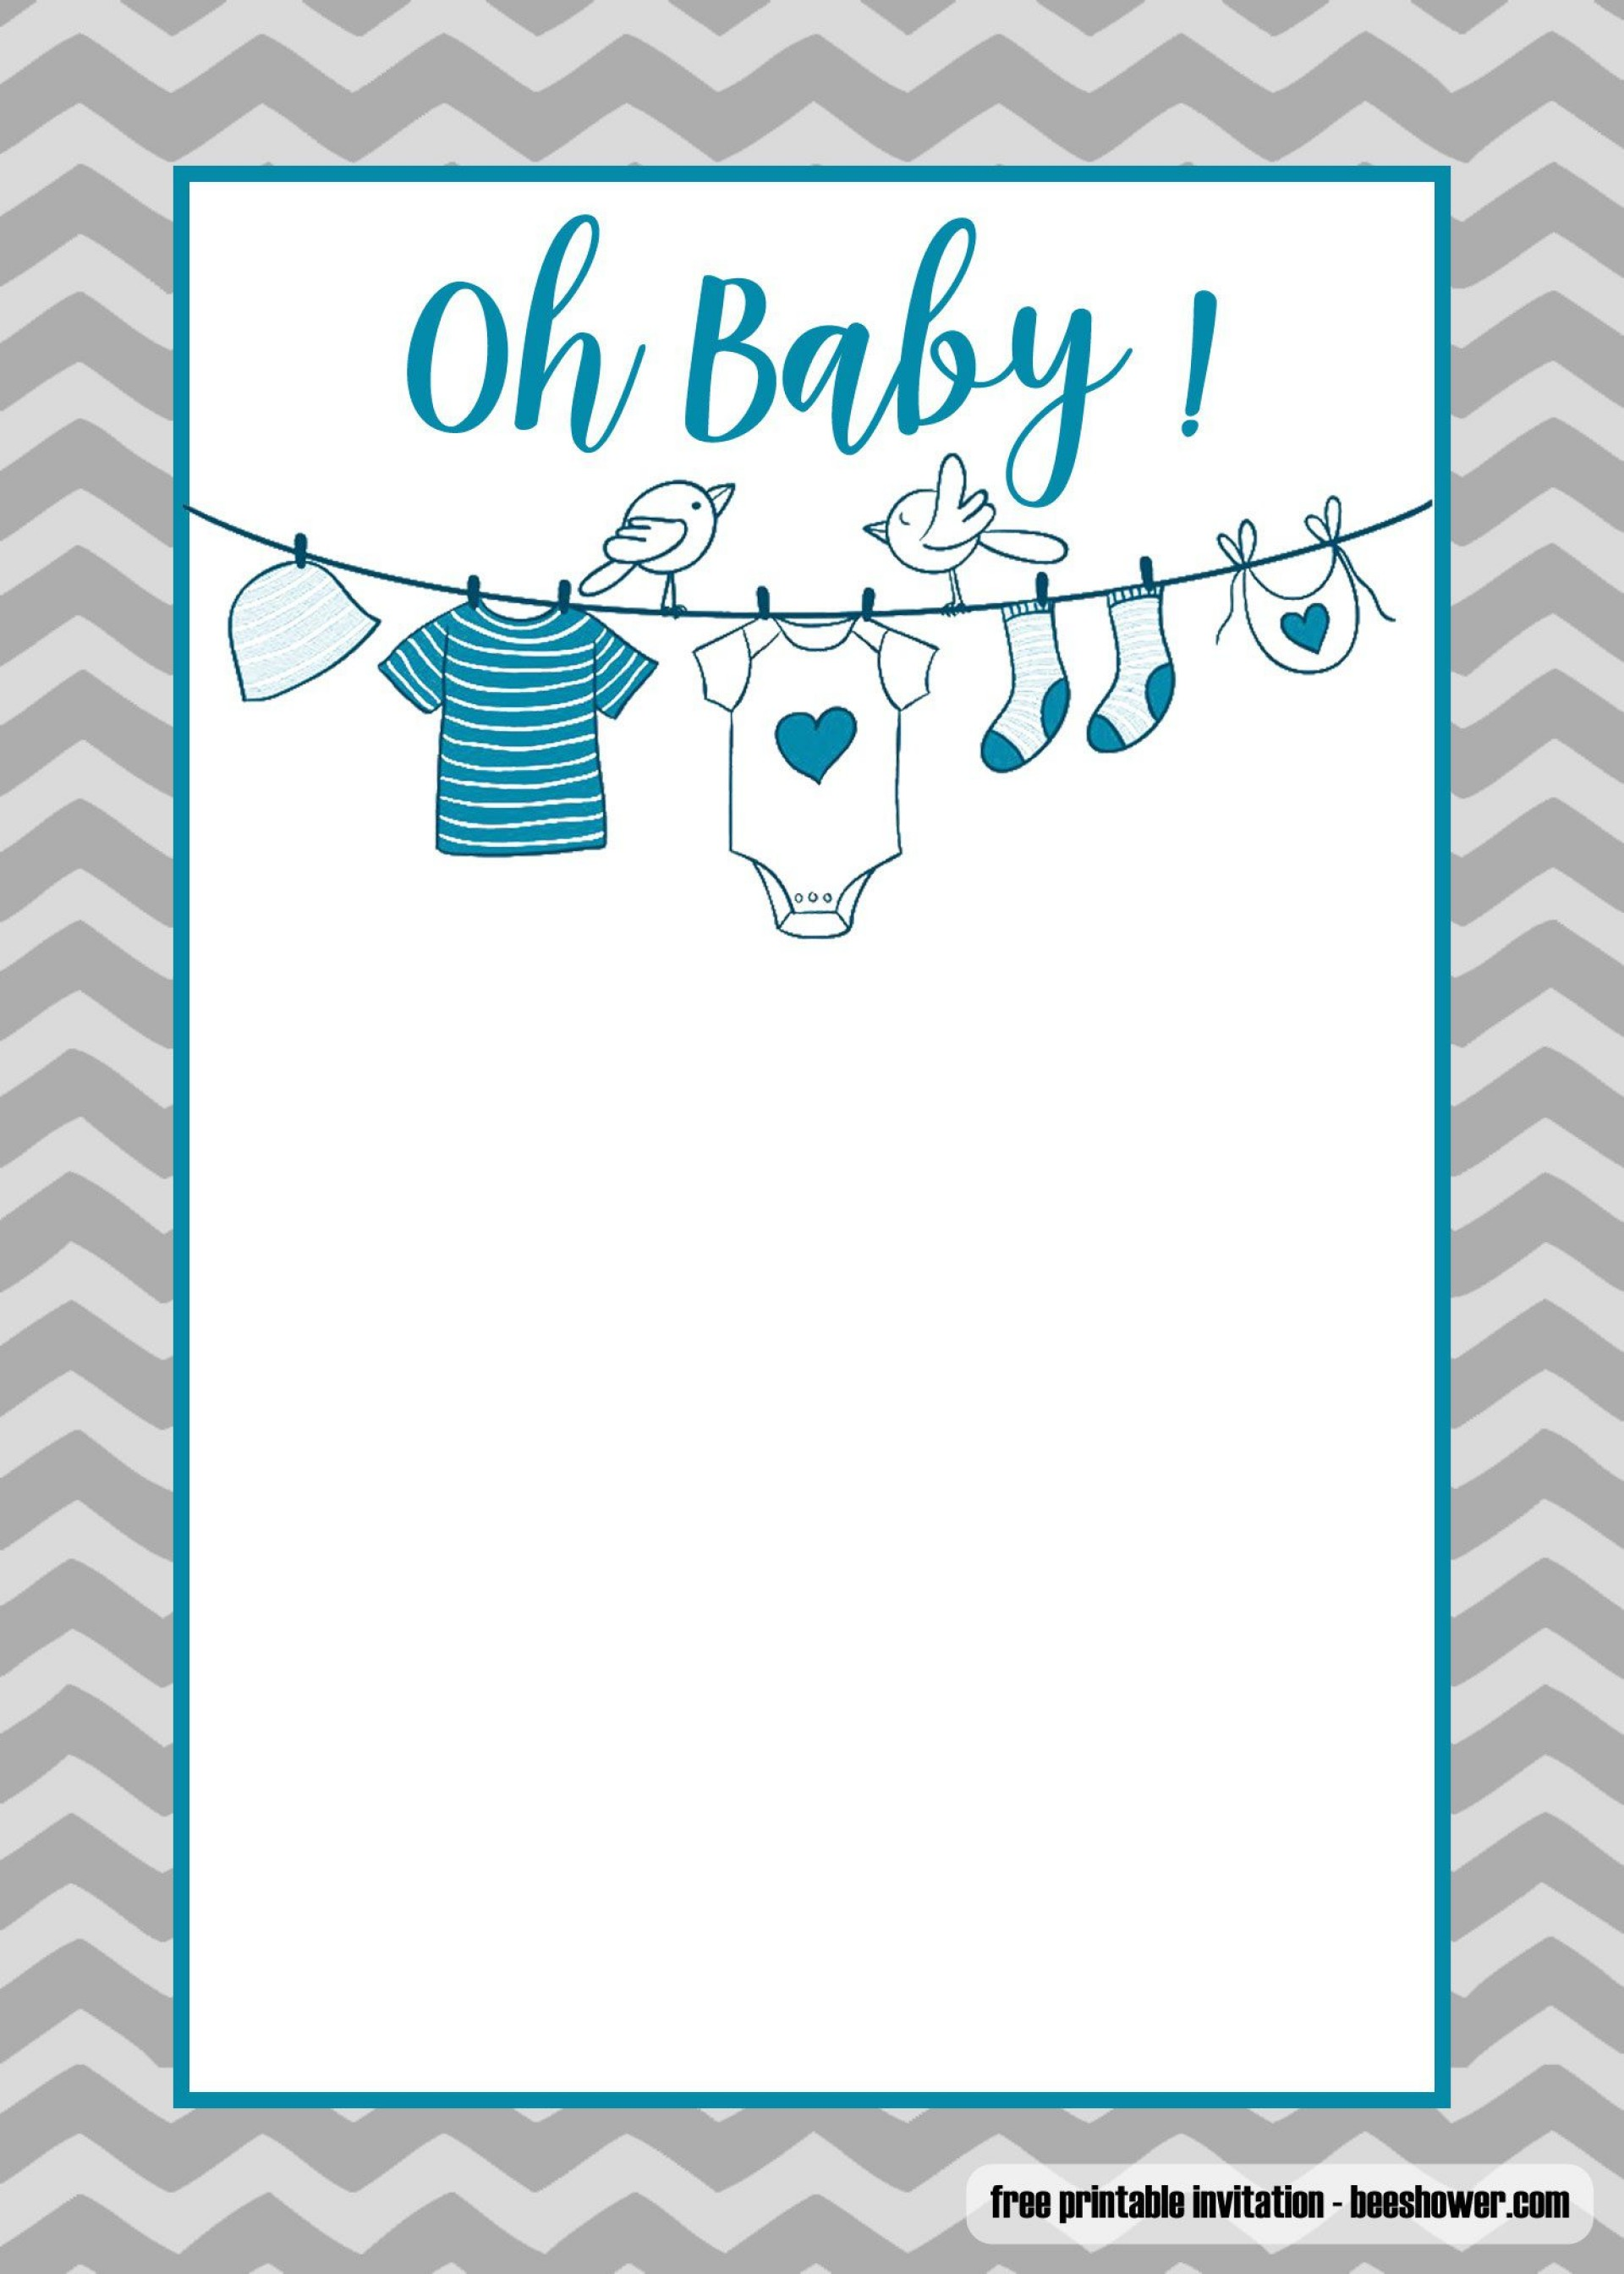 007 Sensational Baby Shower Invite Template Word Highest Clarity  Invitation Wording Sample Free Example1920